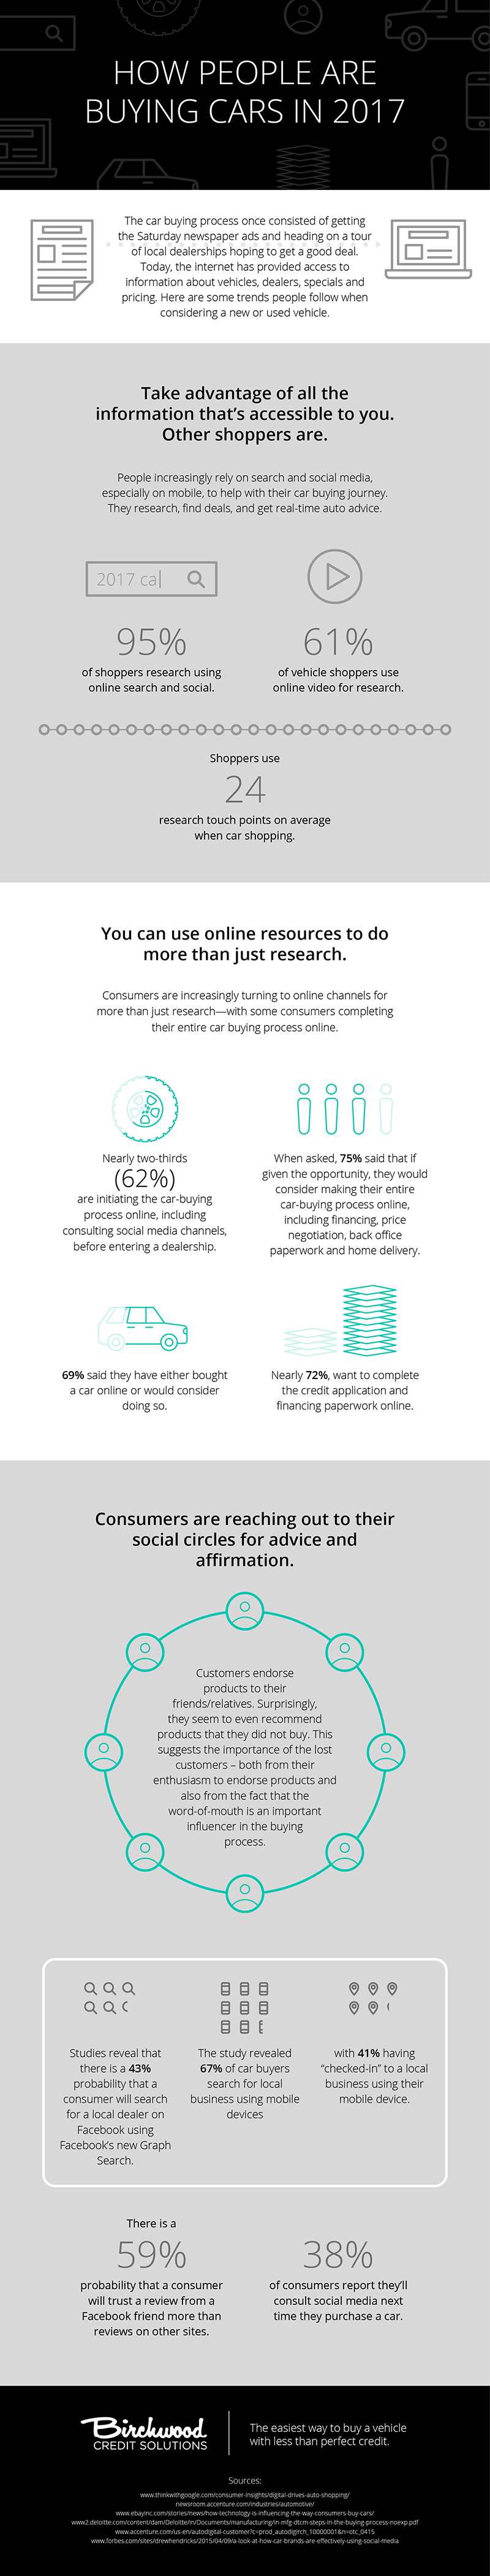 How People Buy Cars in 2017 Infographic